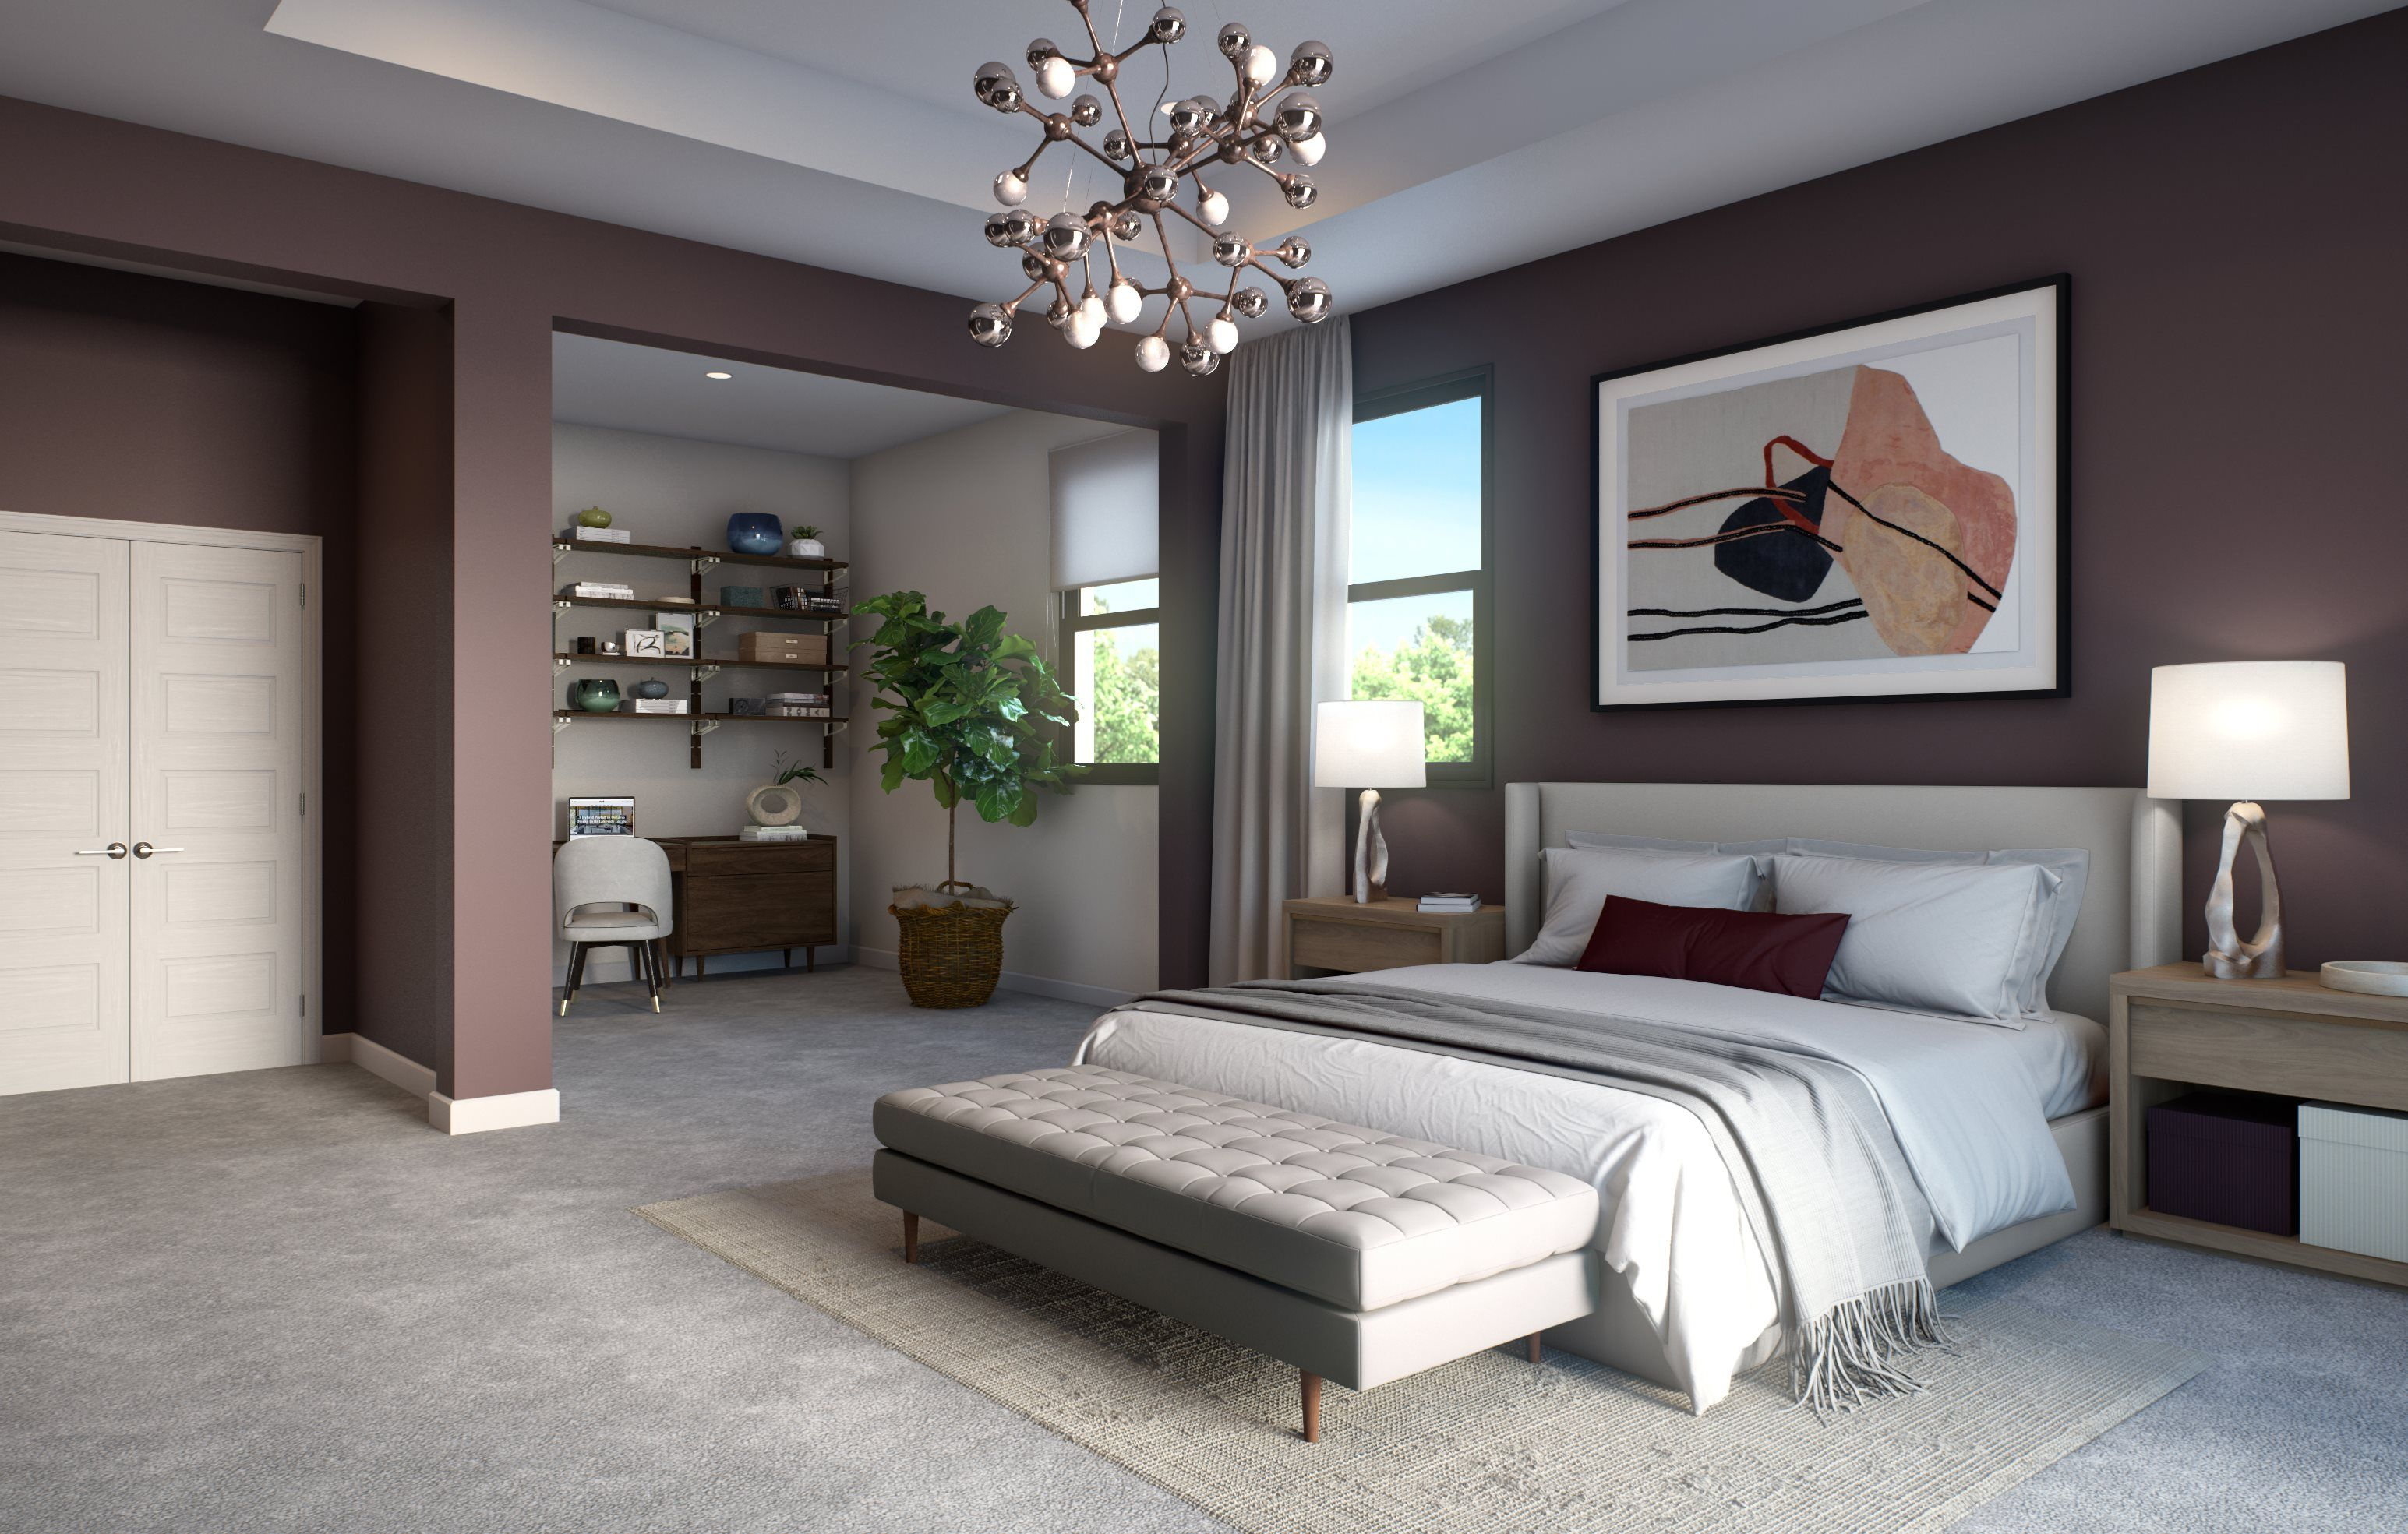 Bedroom featured in the Plaza By Lennar in Broward County-Ft. Lauderdale, FL